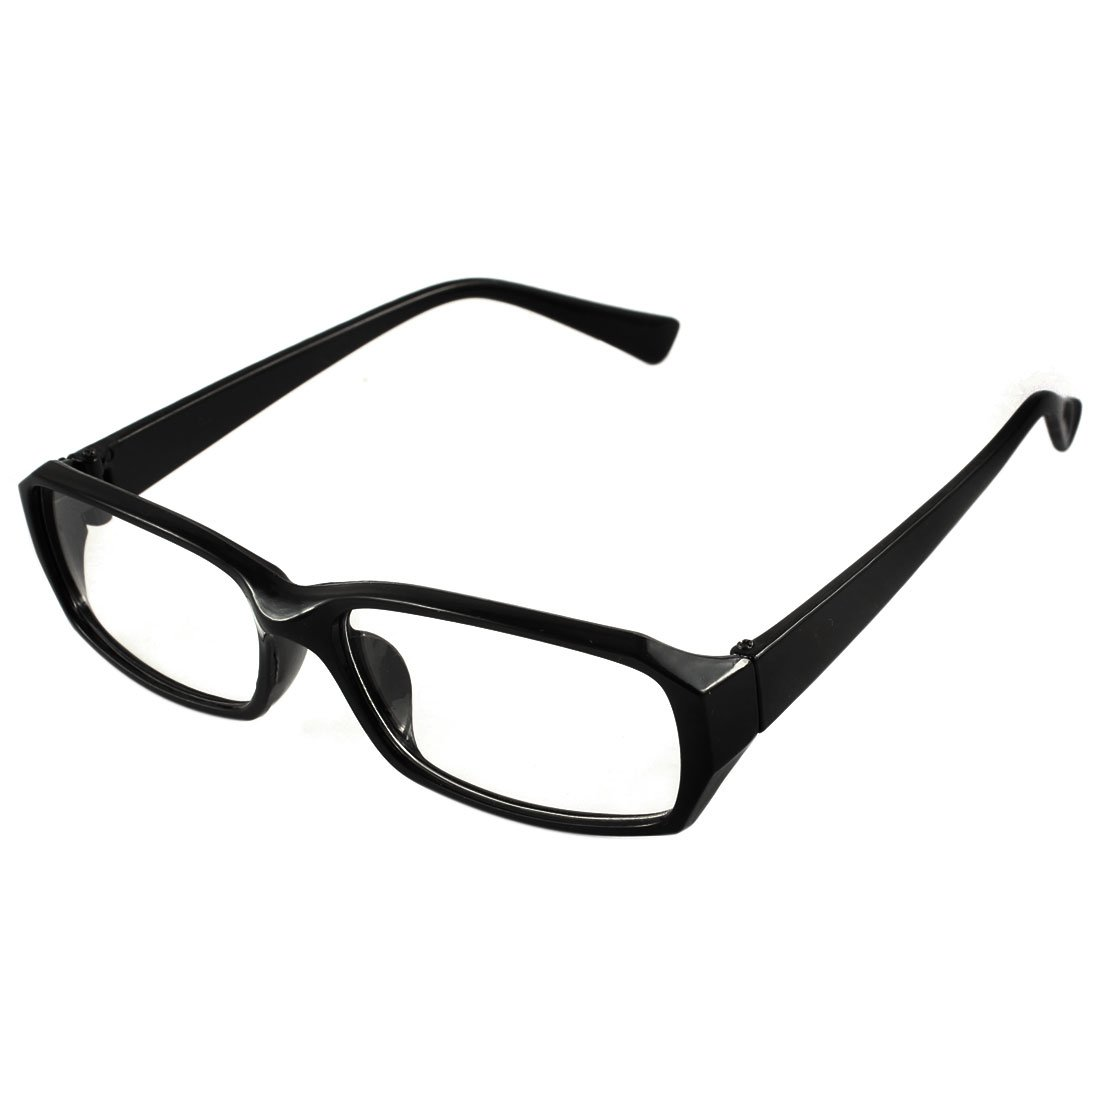 77f2ad8943f Amazon.com  uxcell Unisex Chic Eyeglasses Glasses Eyewear Plain Rectangular  Spectacle Frame Black  Clothing